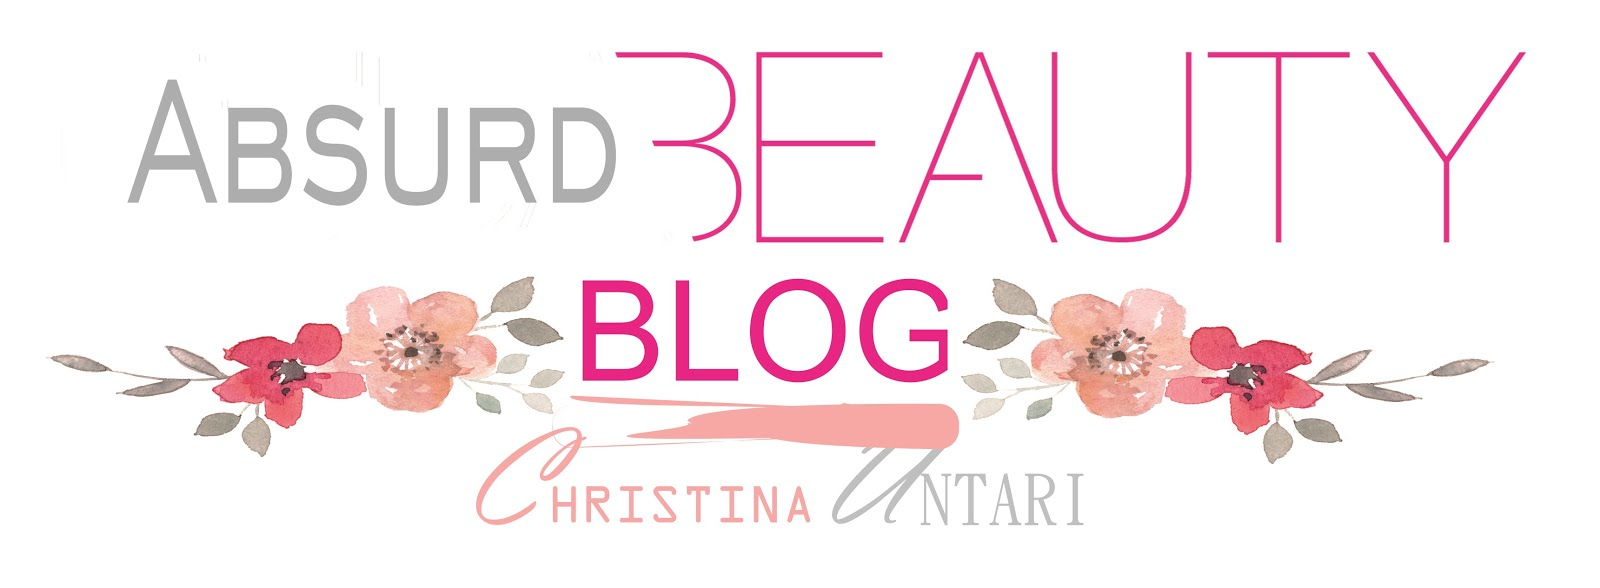 Absurd Beauty Blog